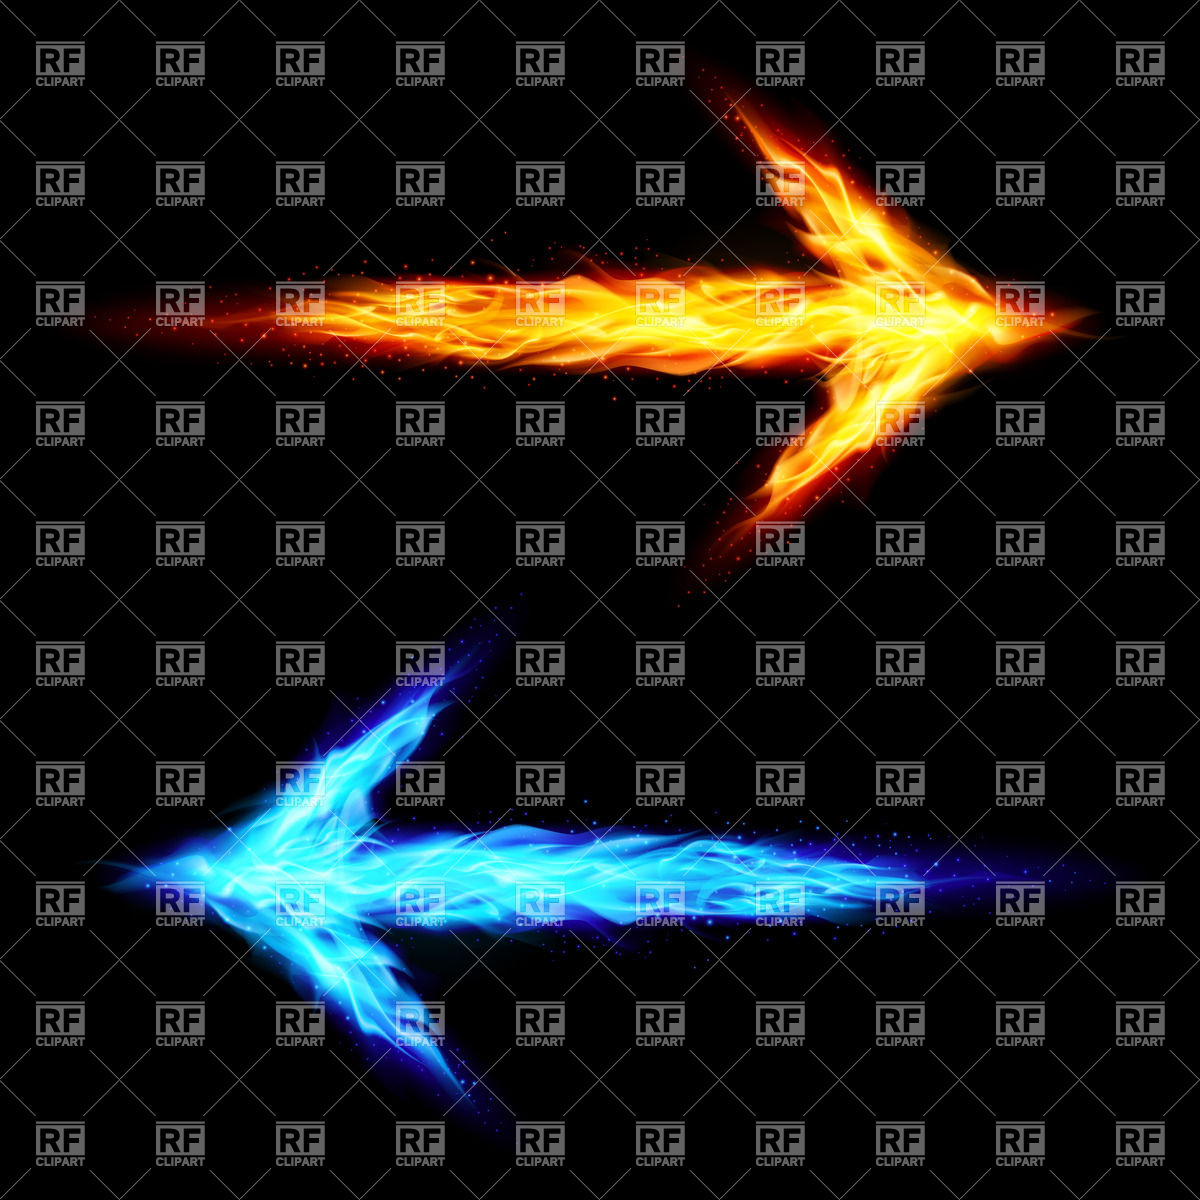 Fire arrow outline clipart image royalty free Fire arrow outline clipart - ClipartFest image royalty free